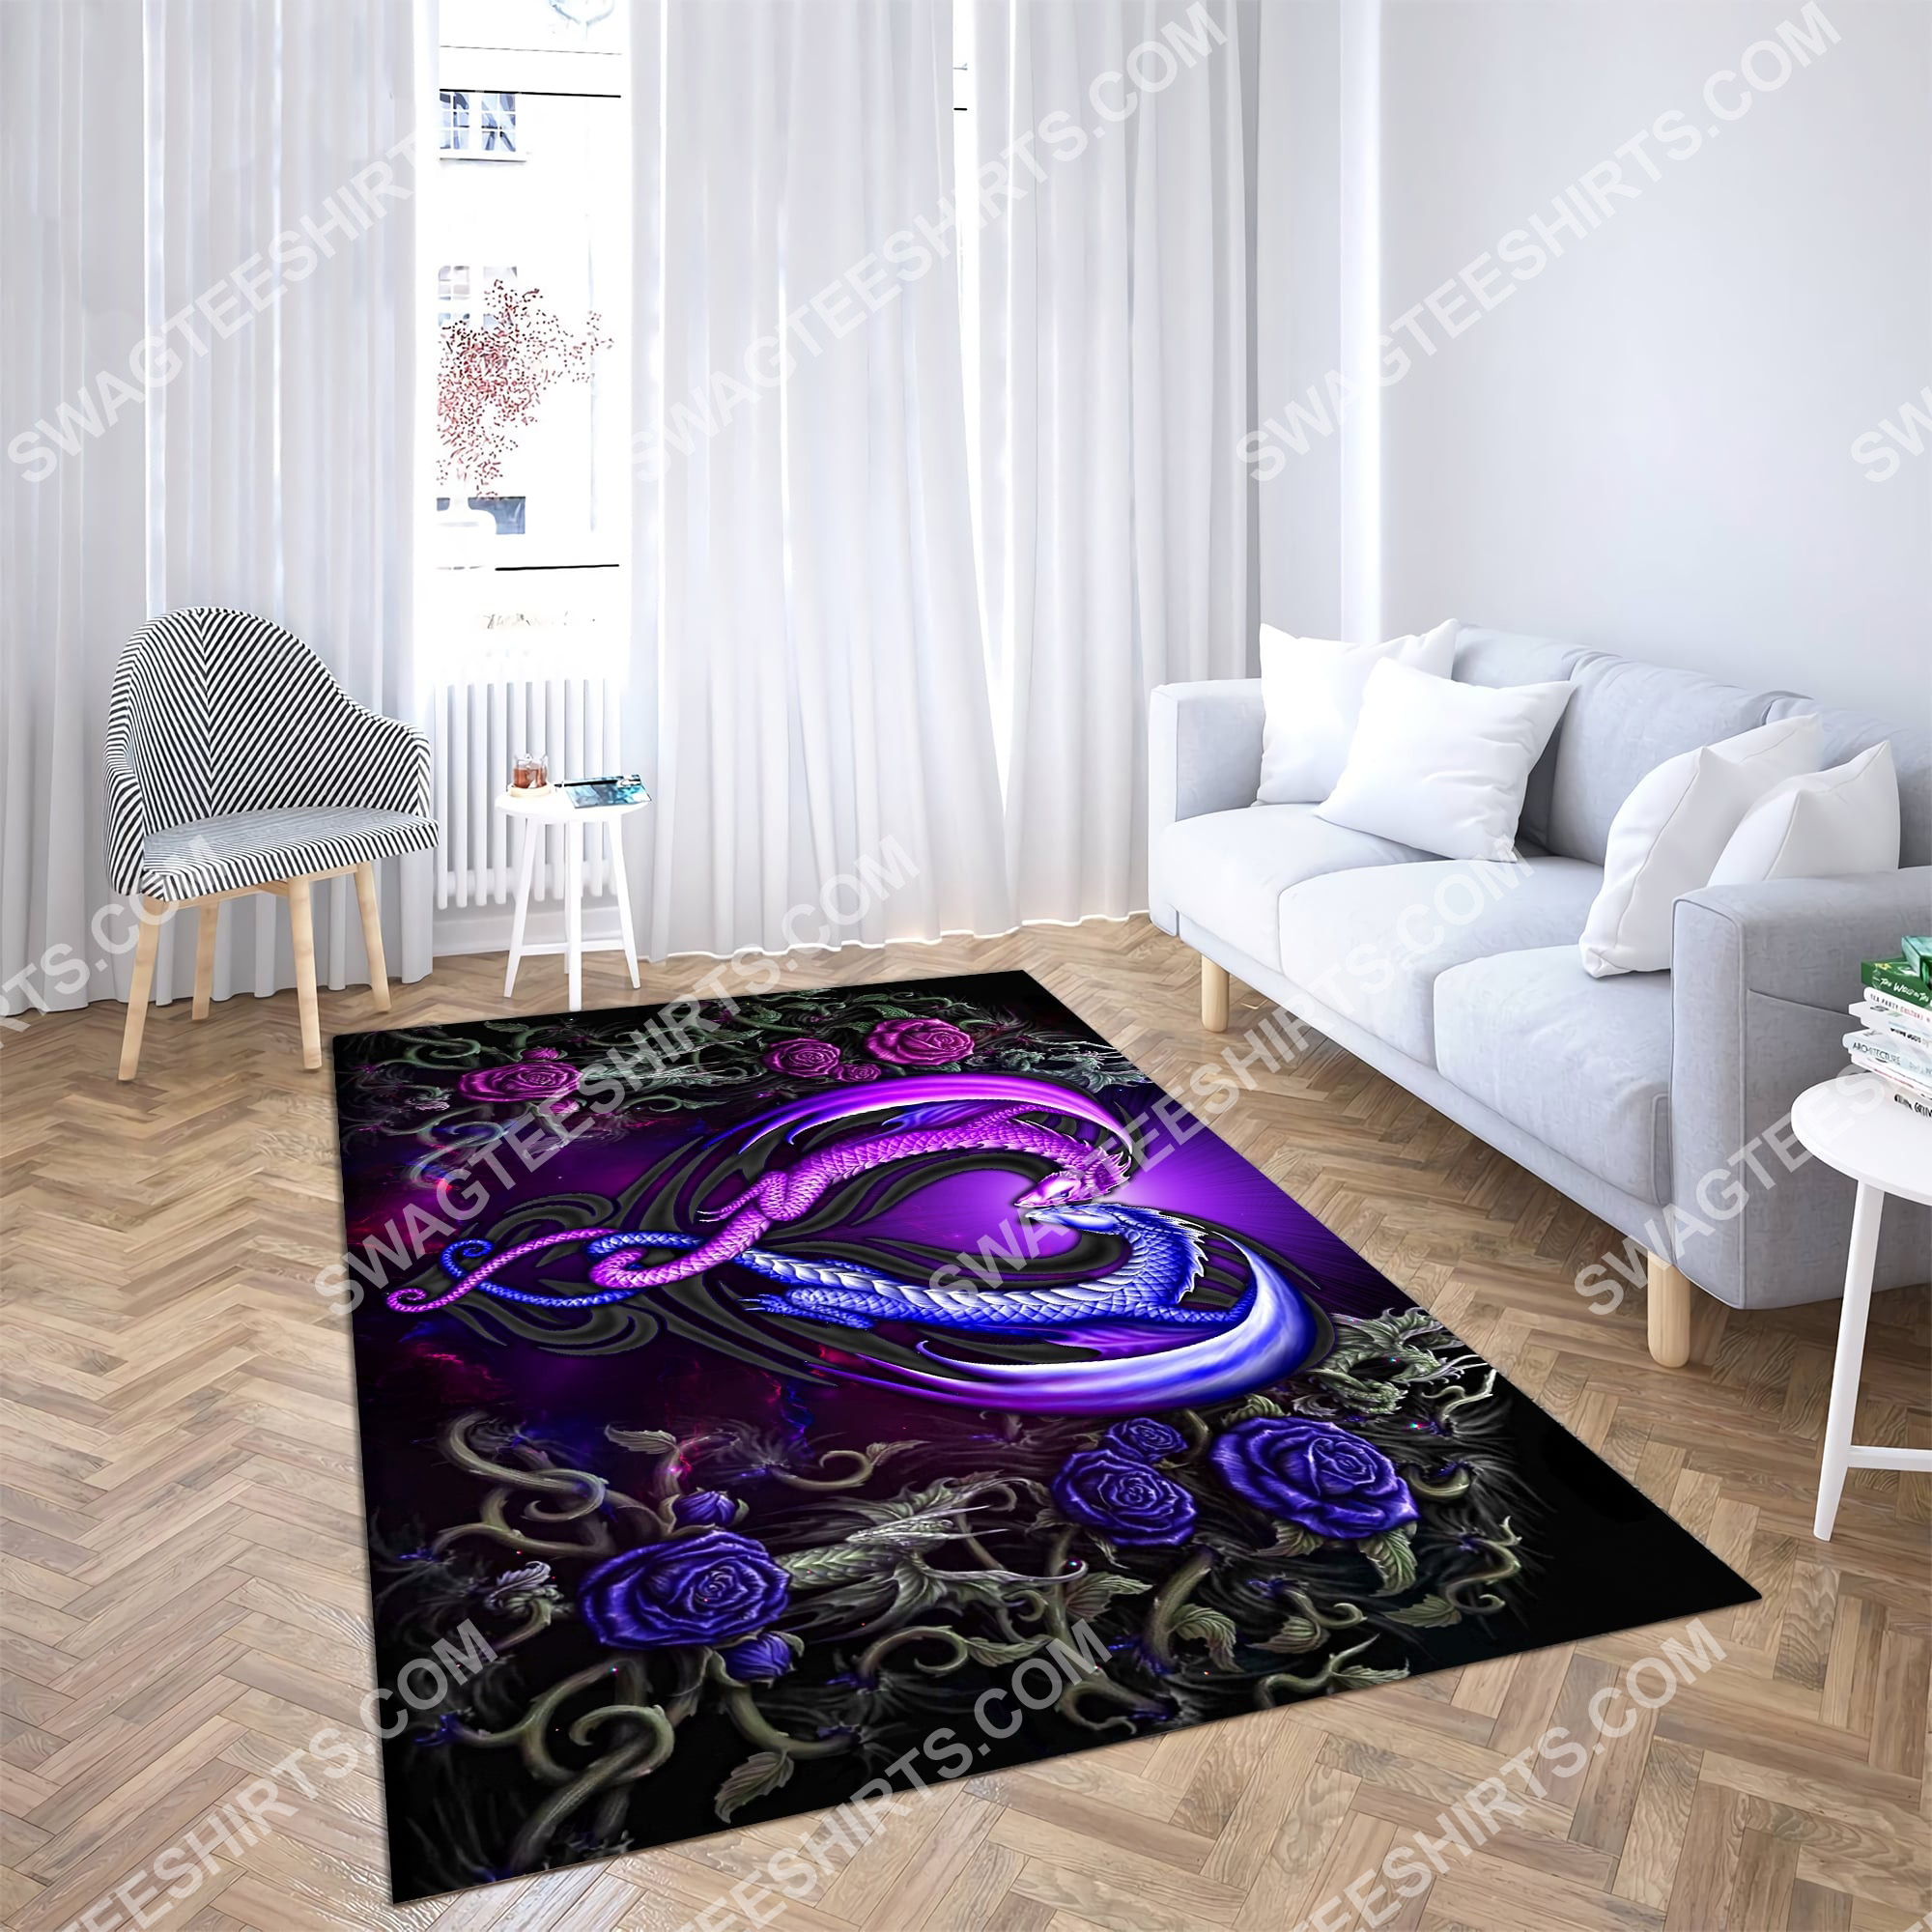 roses dragon couples all over printed rug 5(1)